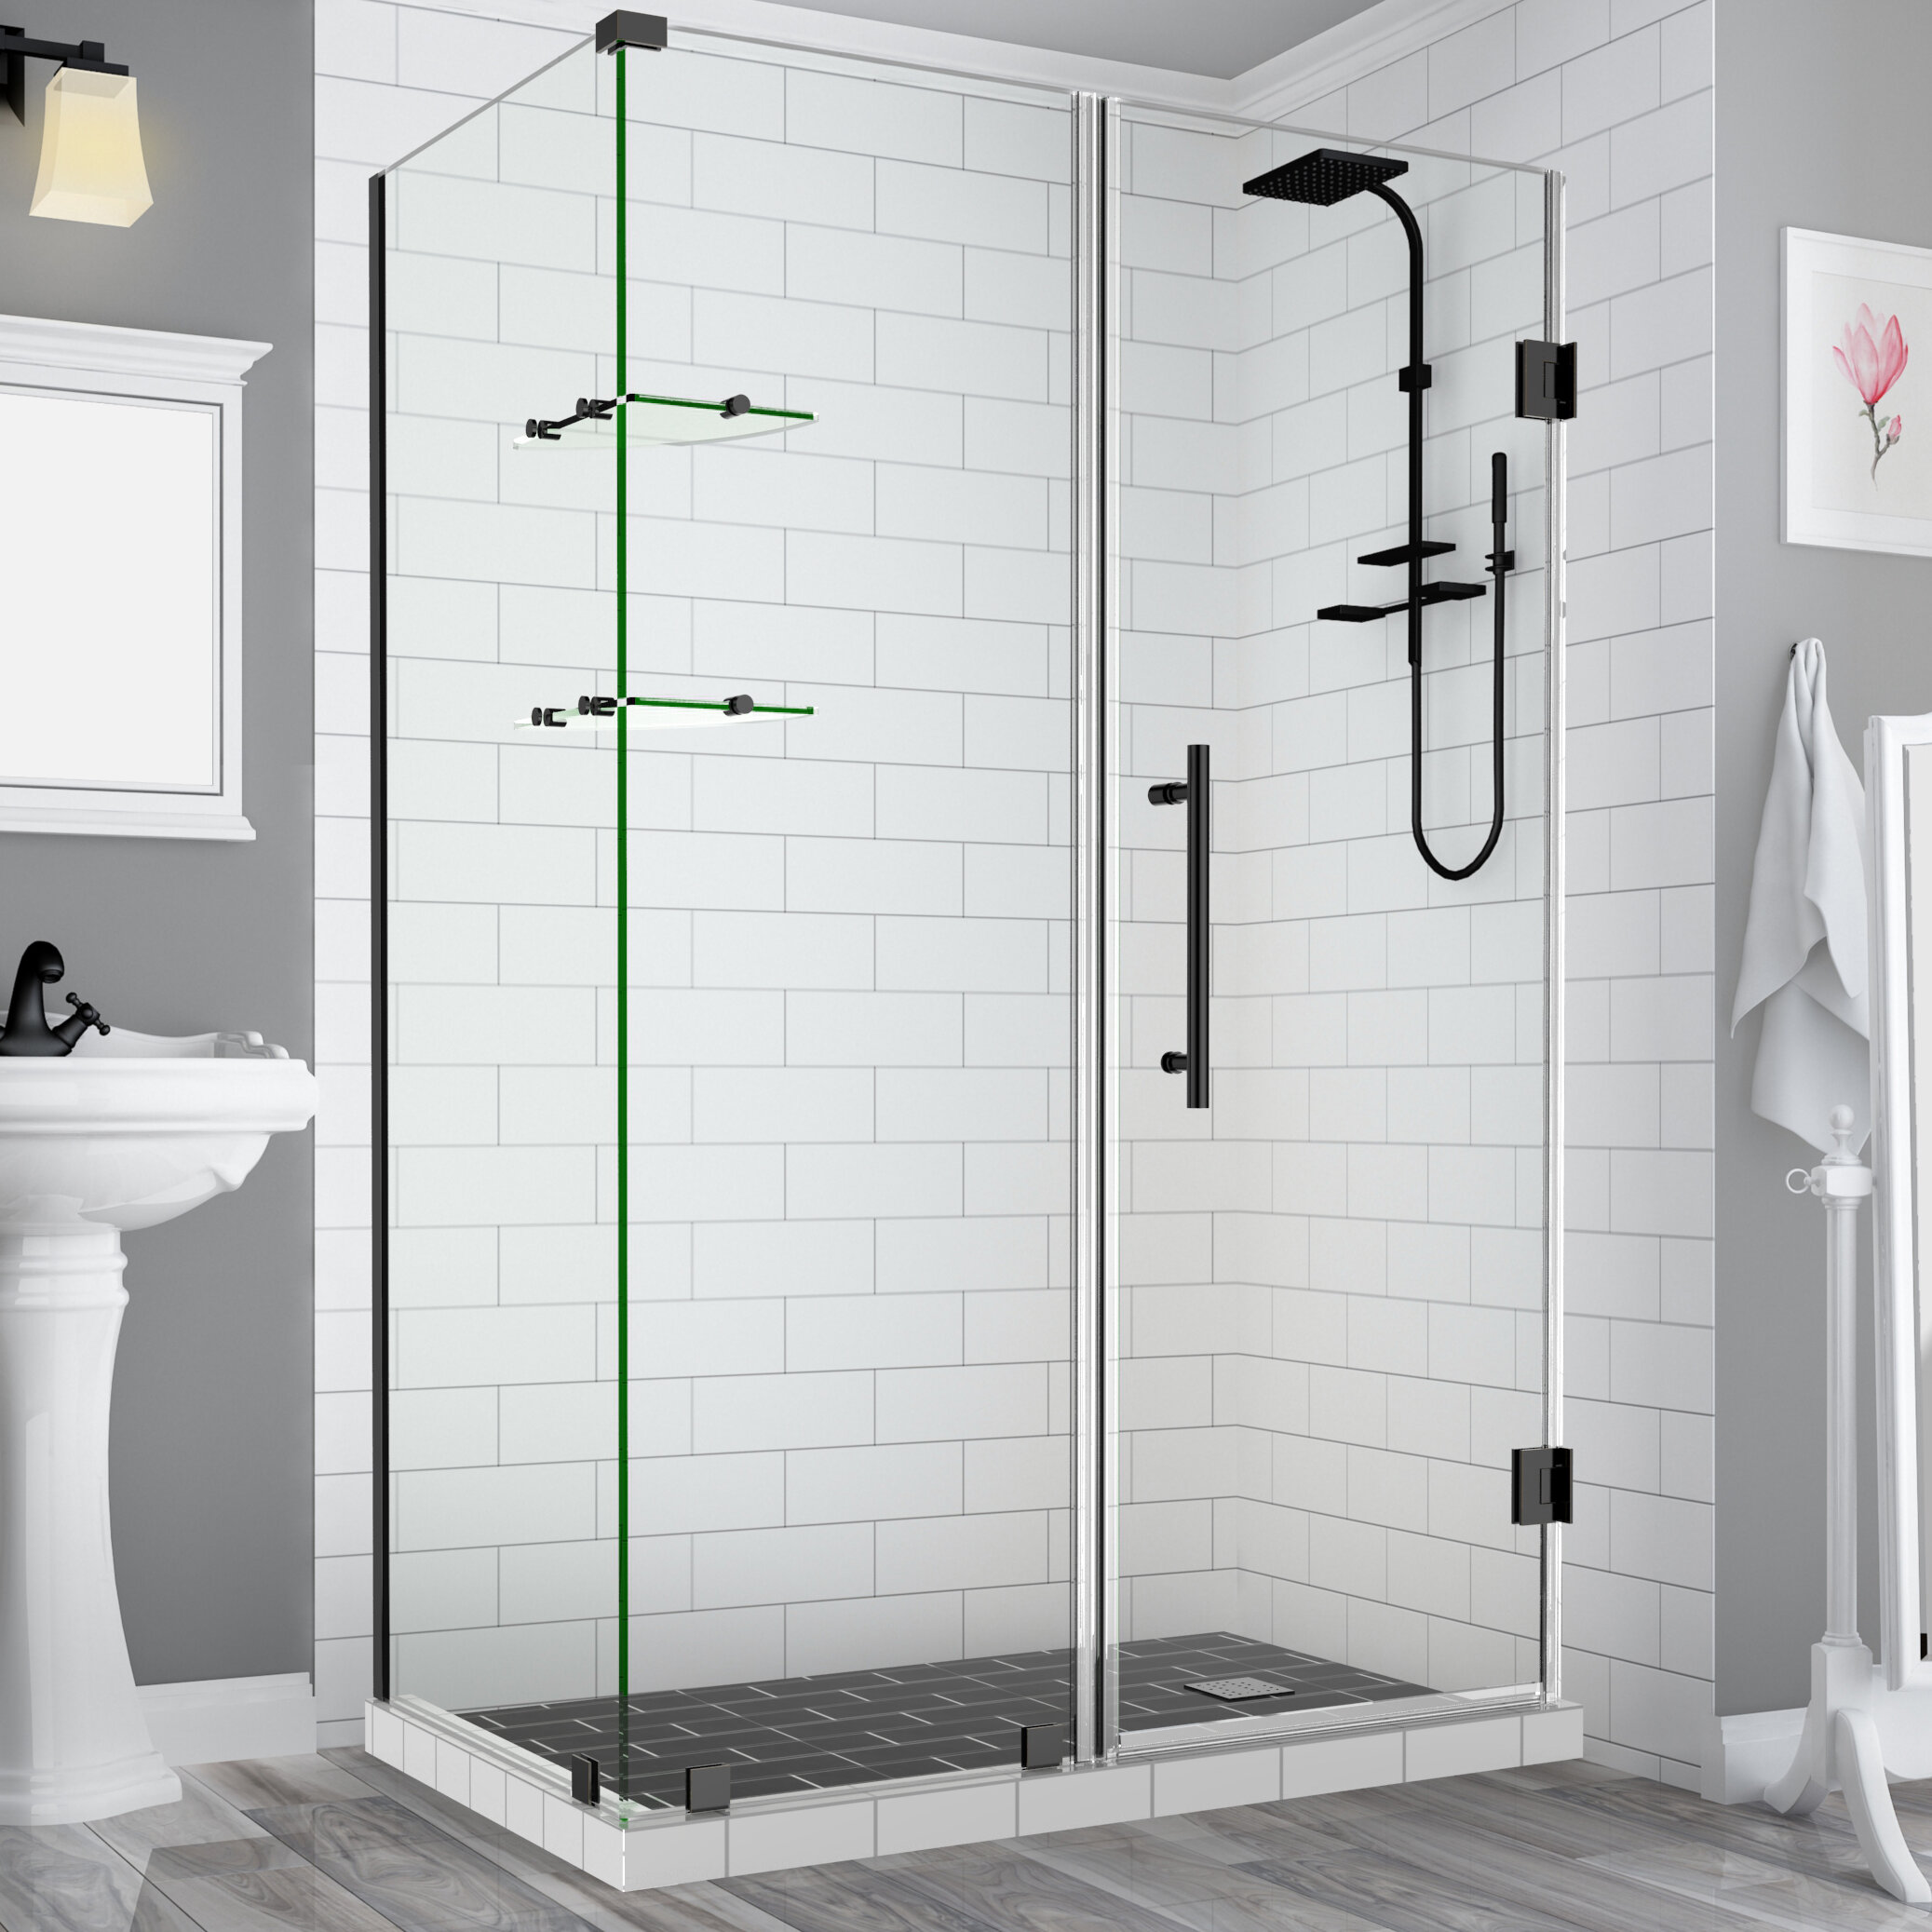 Aston Bromley Gs 34 X 72 Rectangle Hinged Shower Enclosure Reviews Wayfair